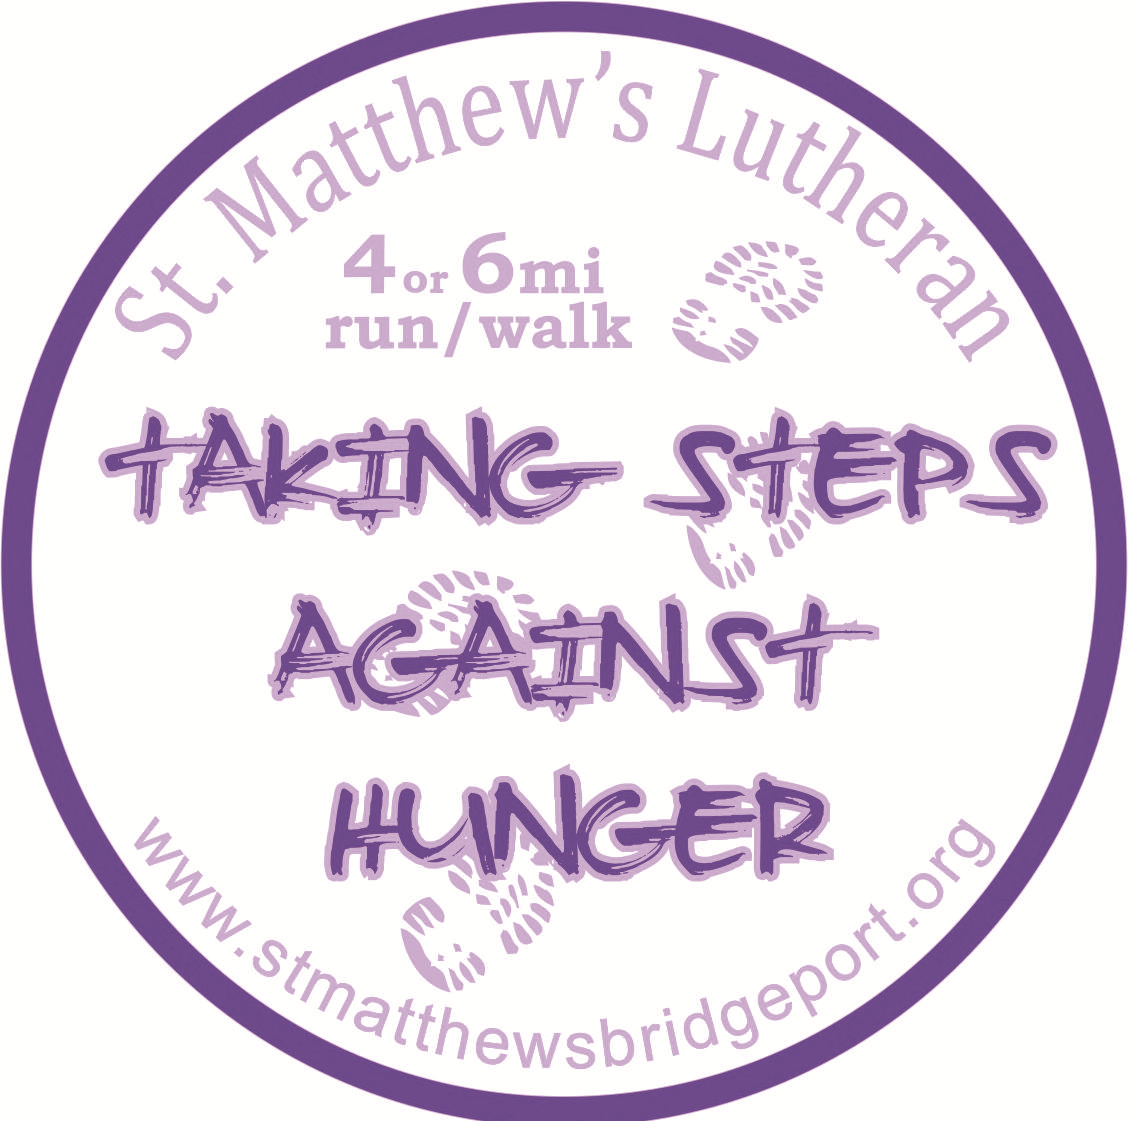 images.raceentry.com/infopages/taking-steps-against-hunger-infopages-936.png